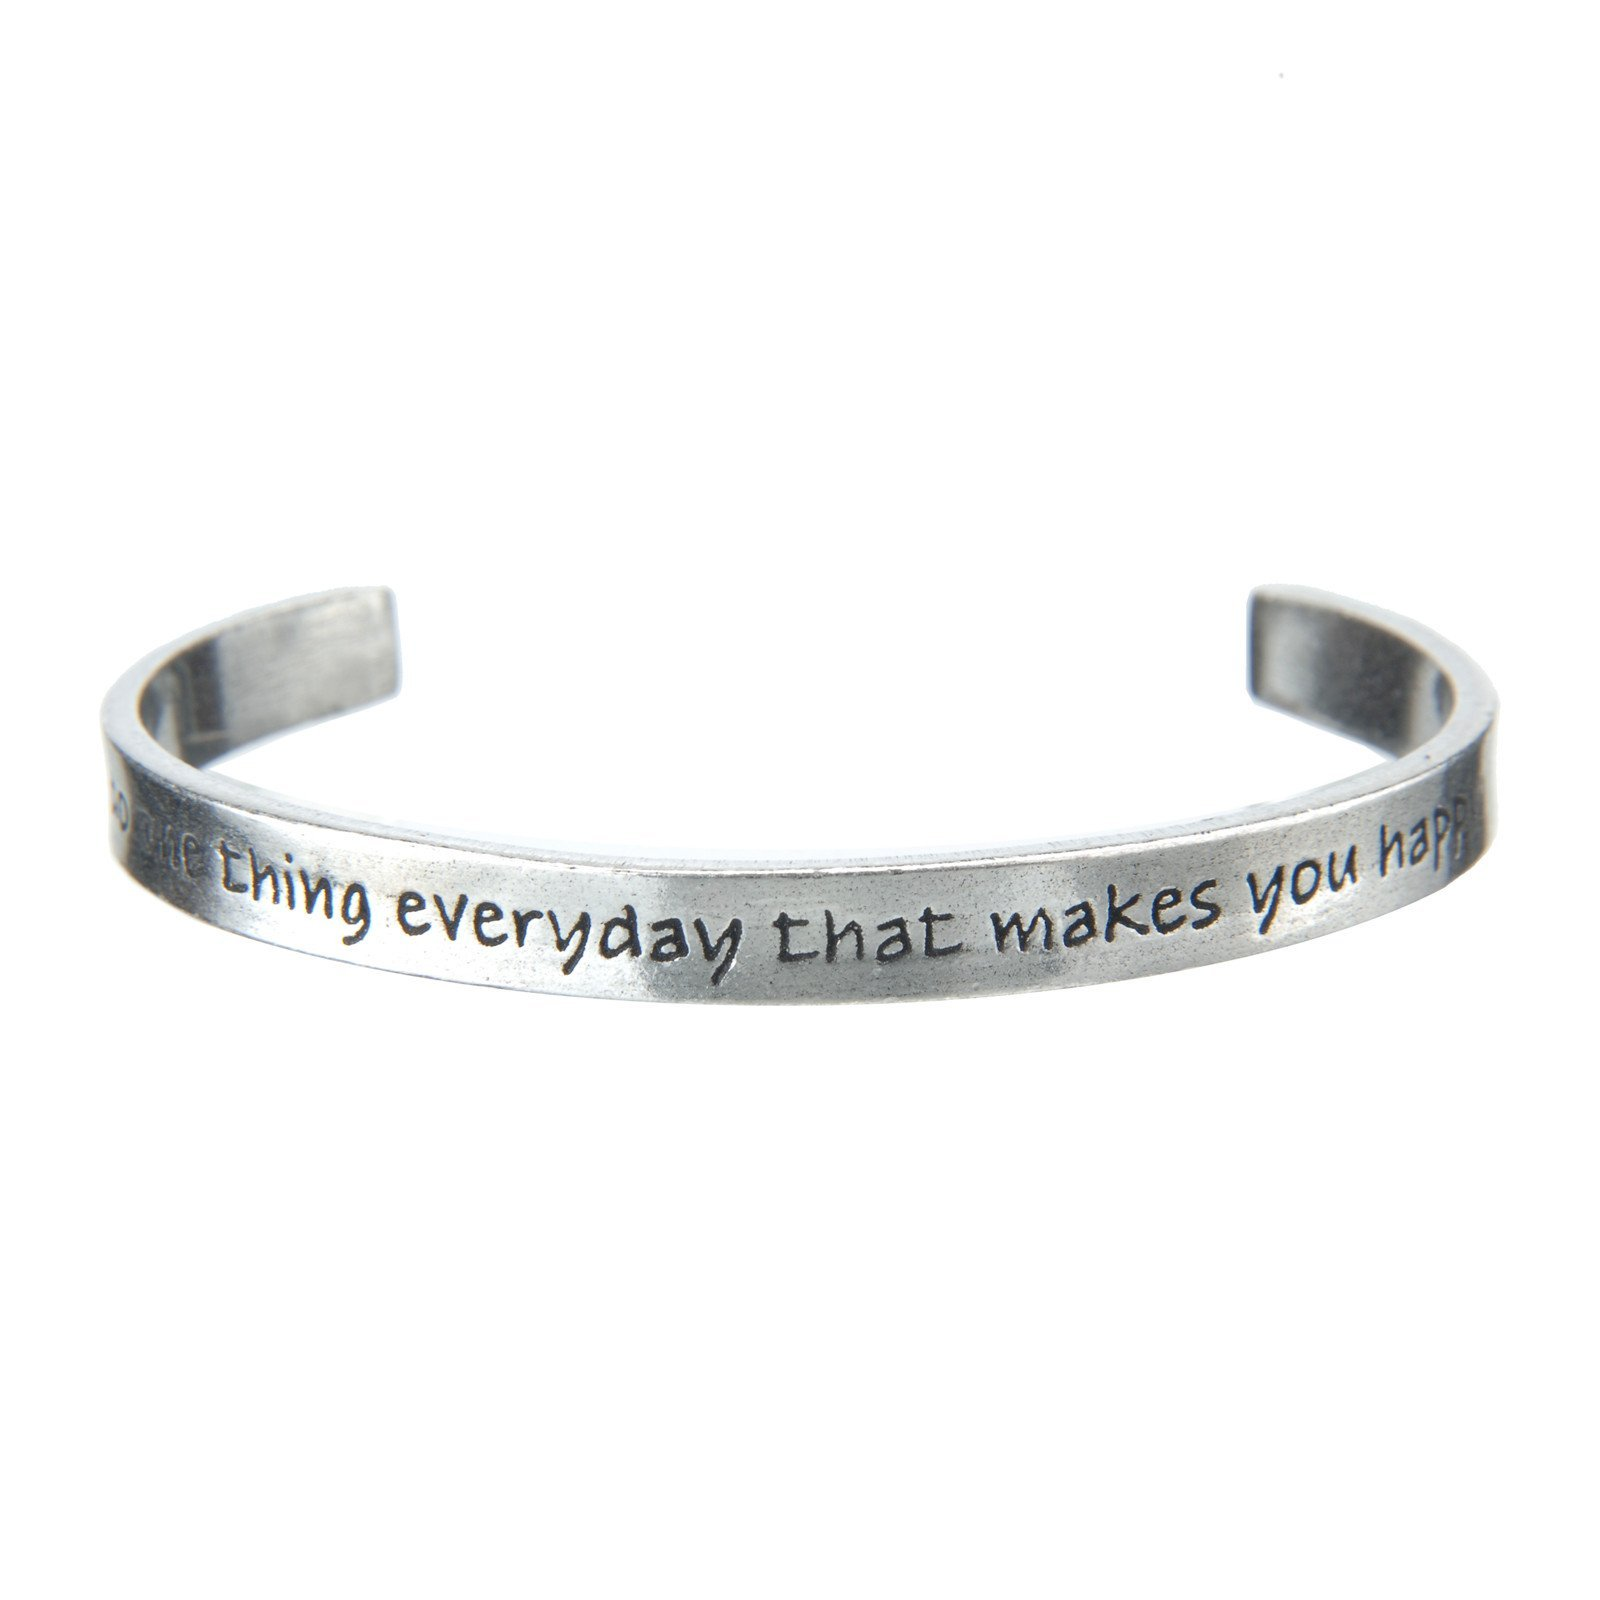 Do One Thing That Makes You Happy Every Day Cuff Bracelet by WHD001